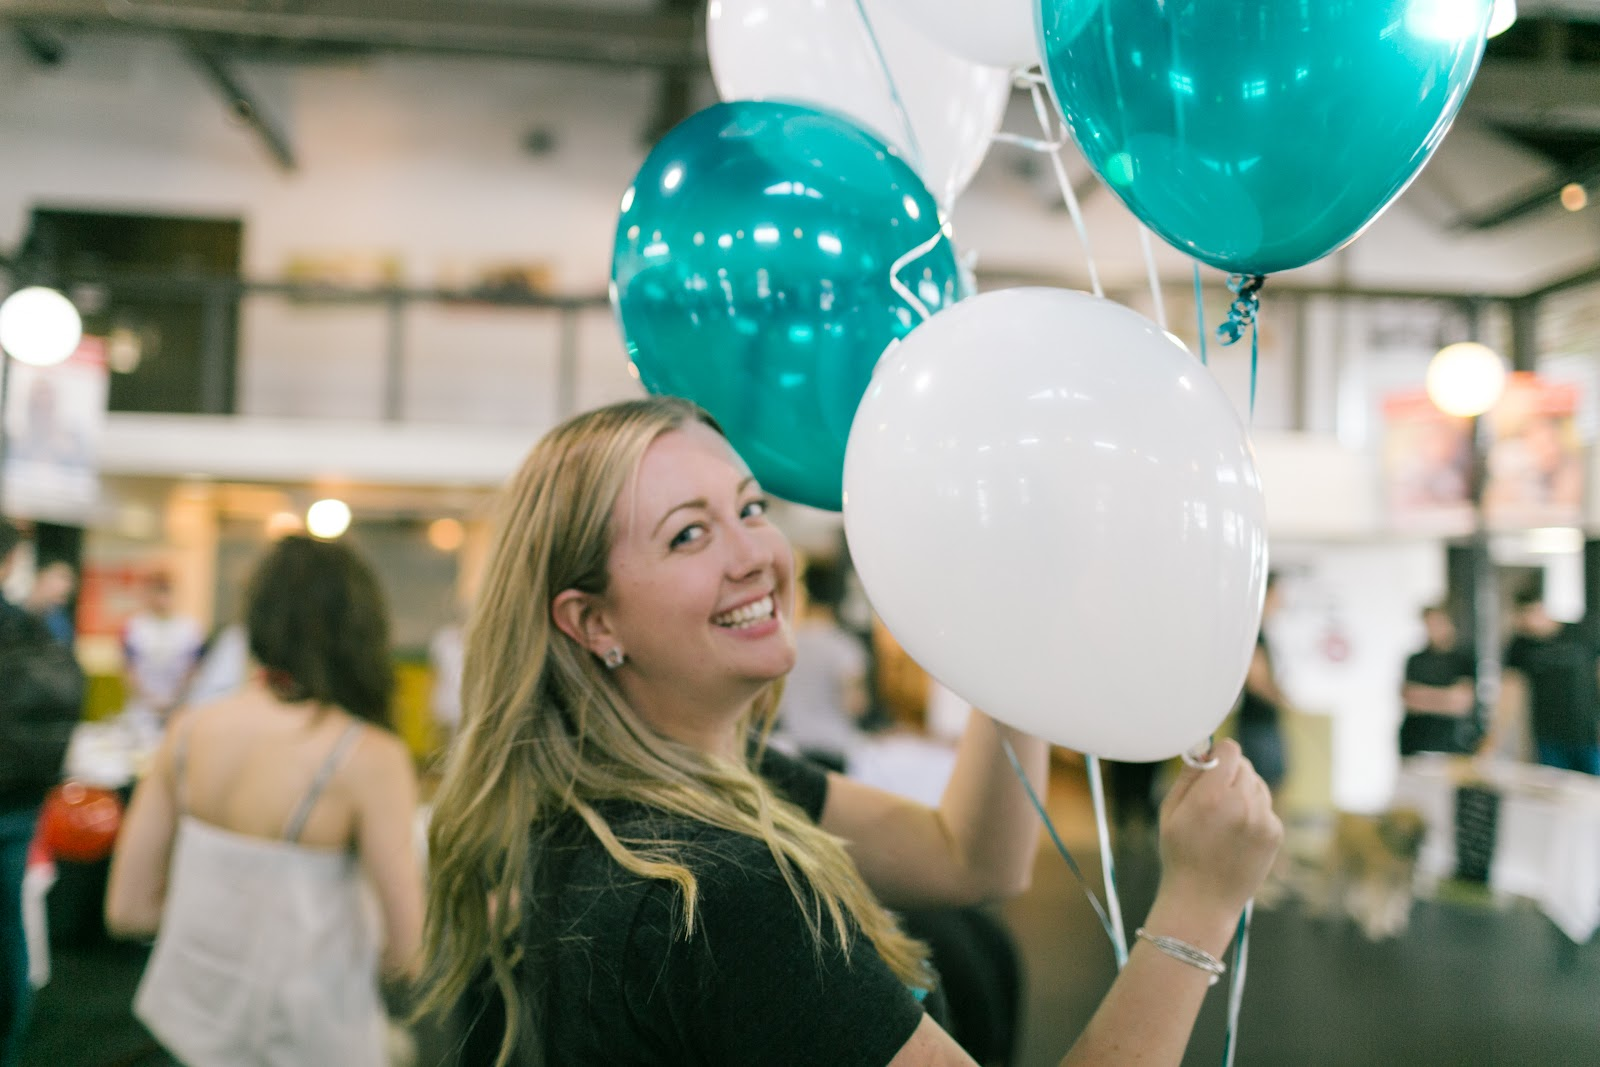 Woman smiling holding balloons.